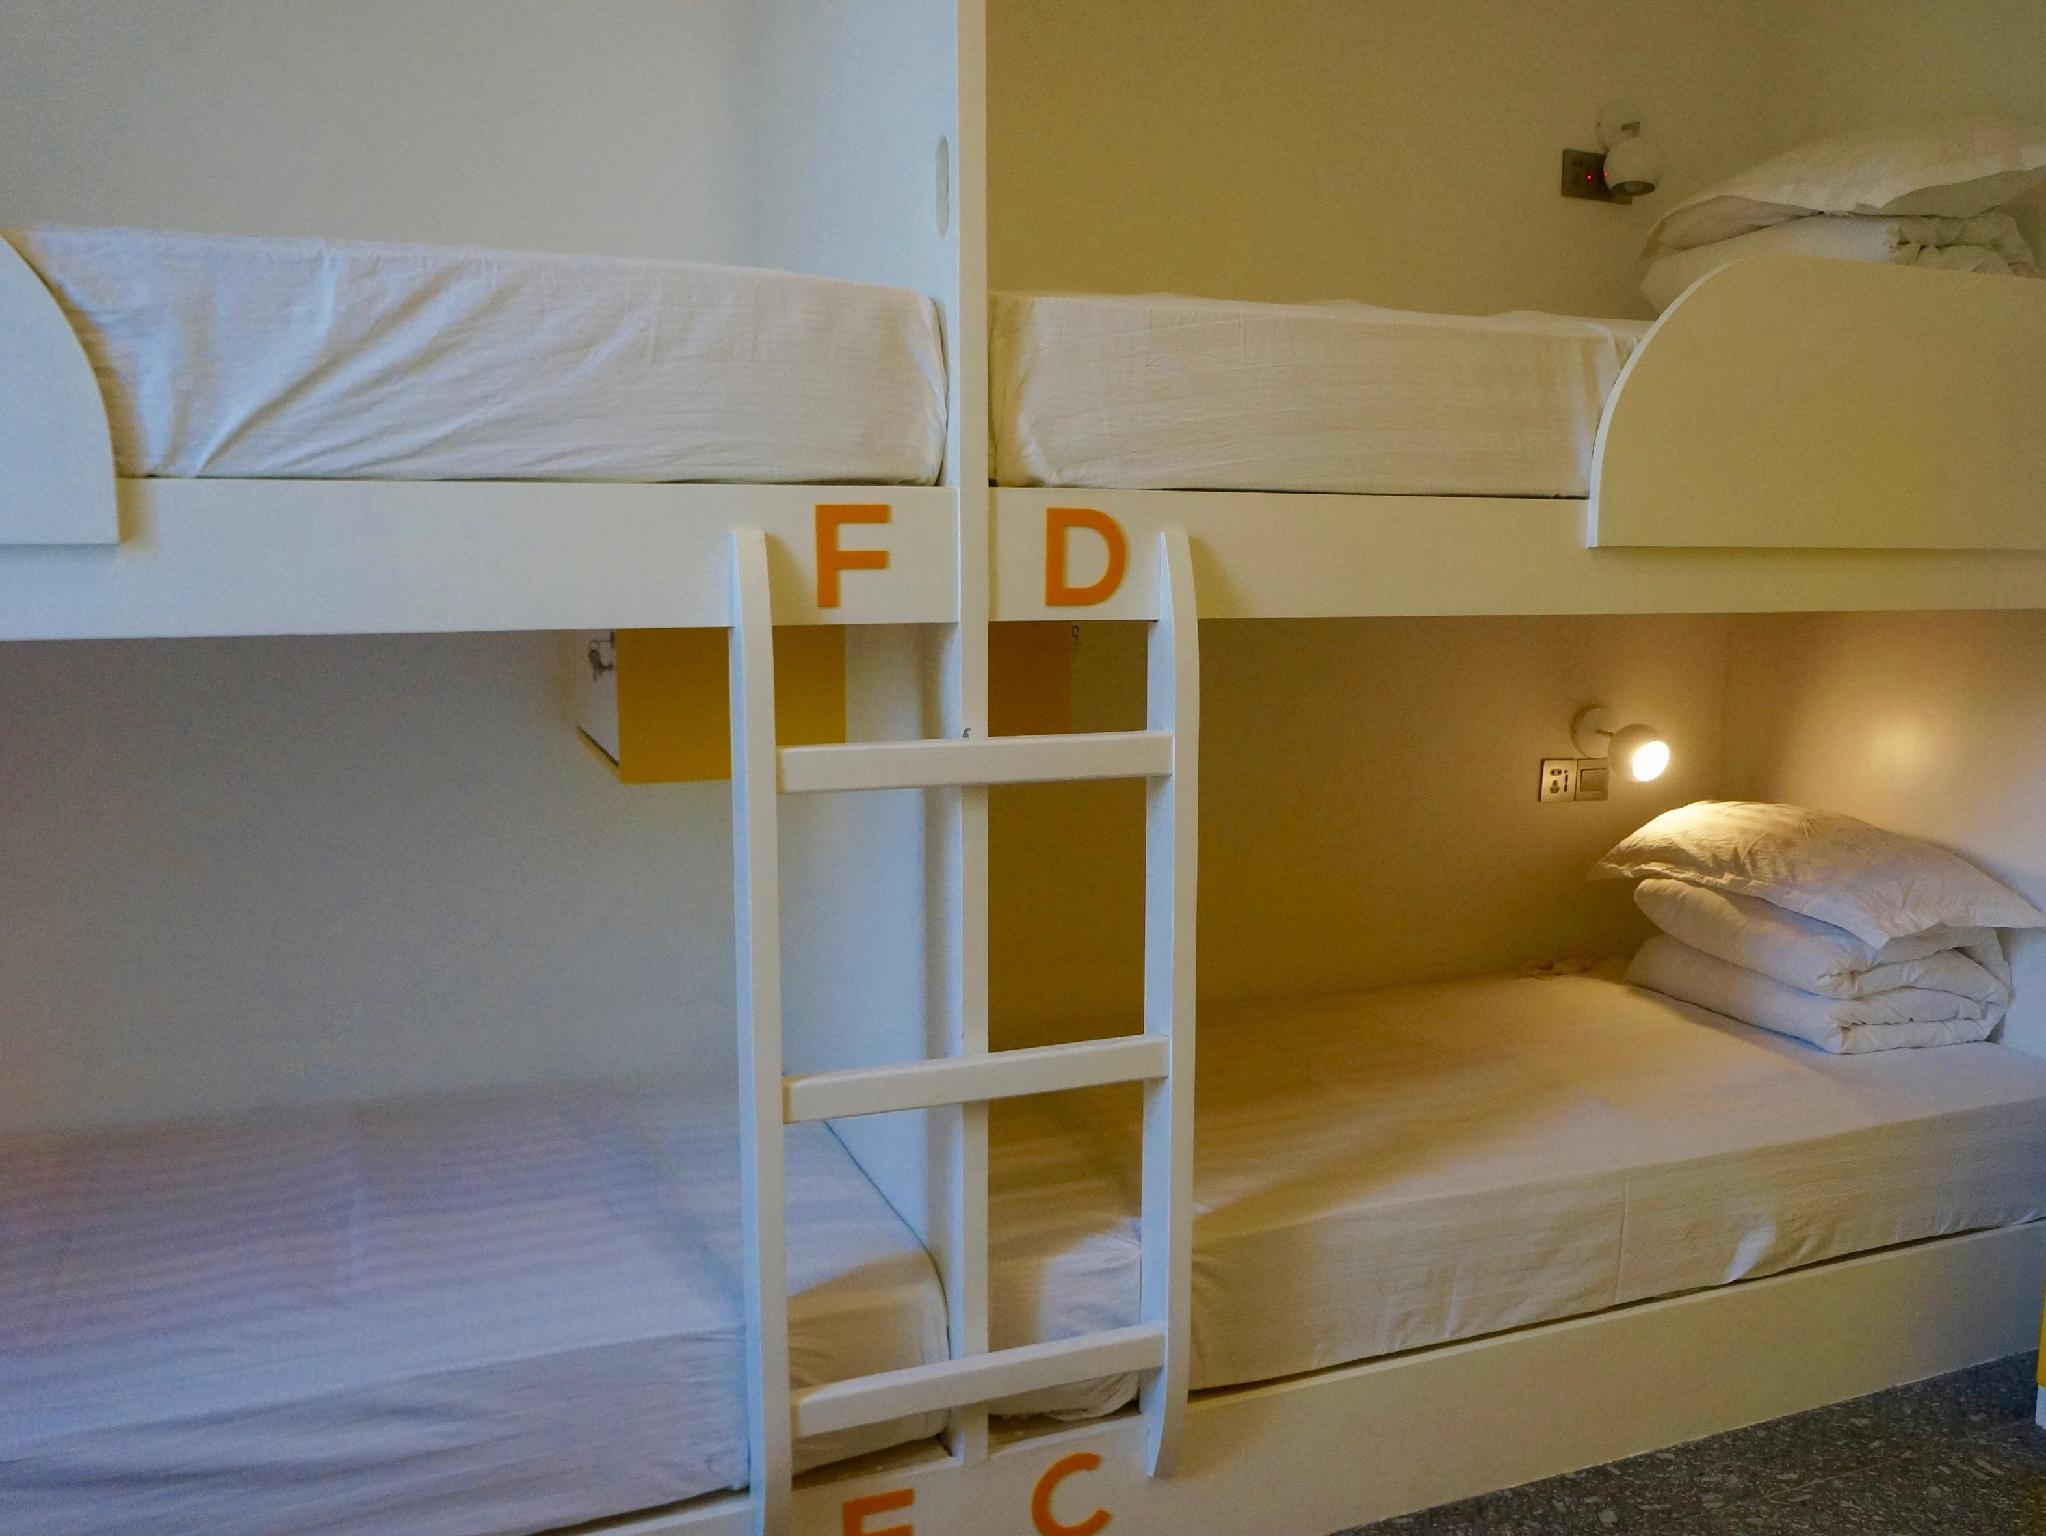 1 Bed in 8 Bed Dormitory